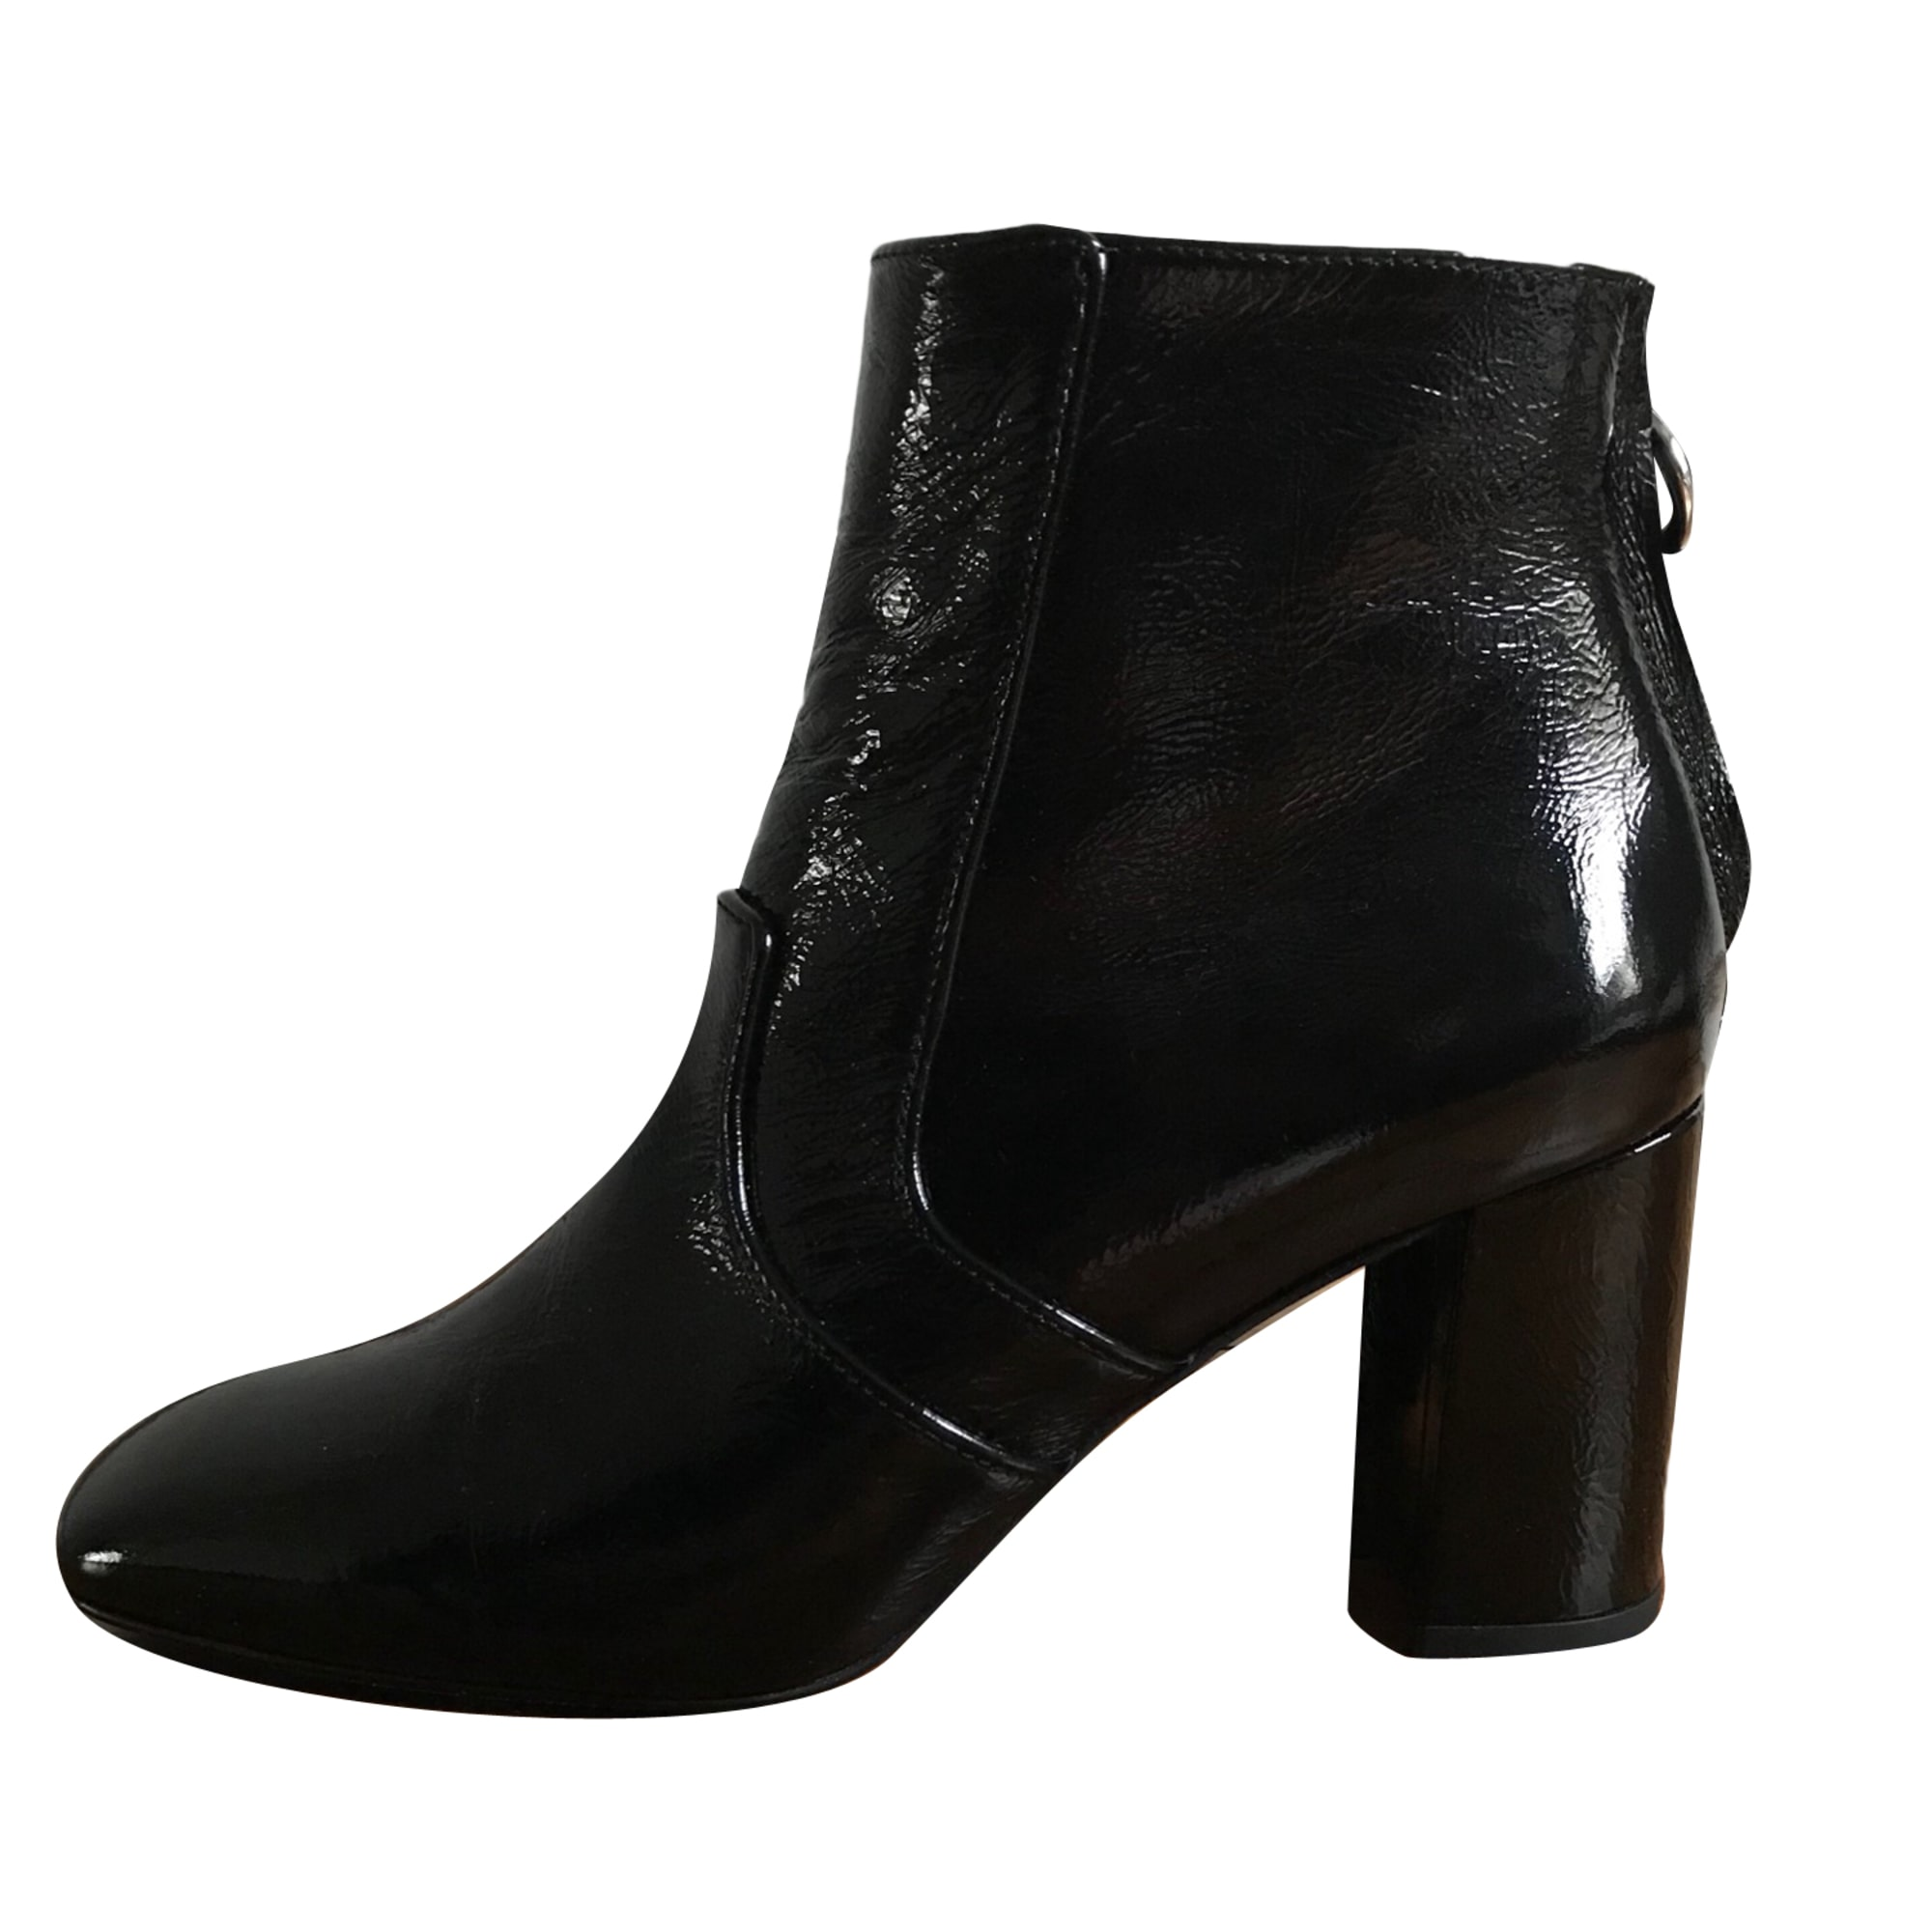 bbc7c761728dc Bottines   low boots à talons CLAUDIE PIERLOT 38 noir vendu par ...